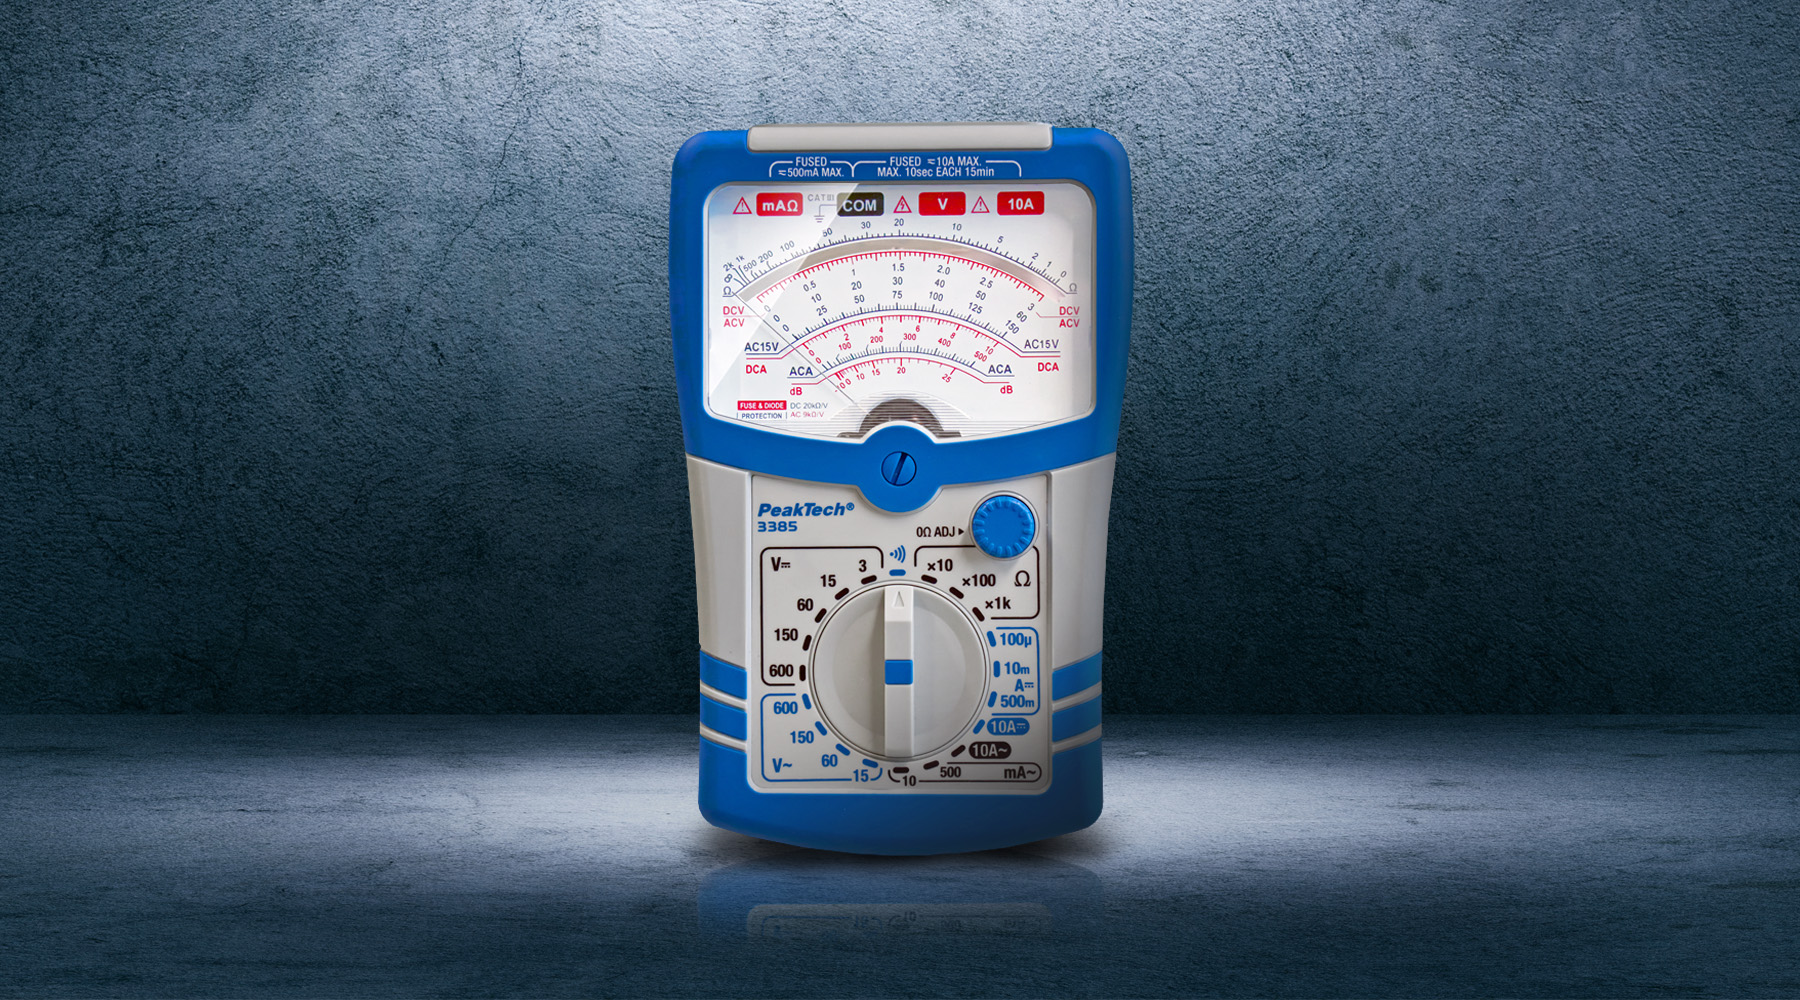 Analog measuring devices